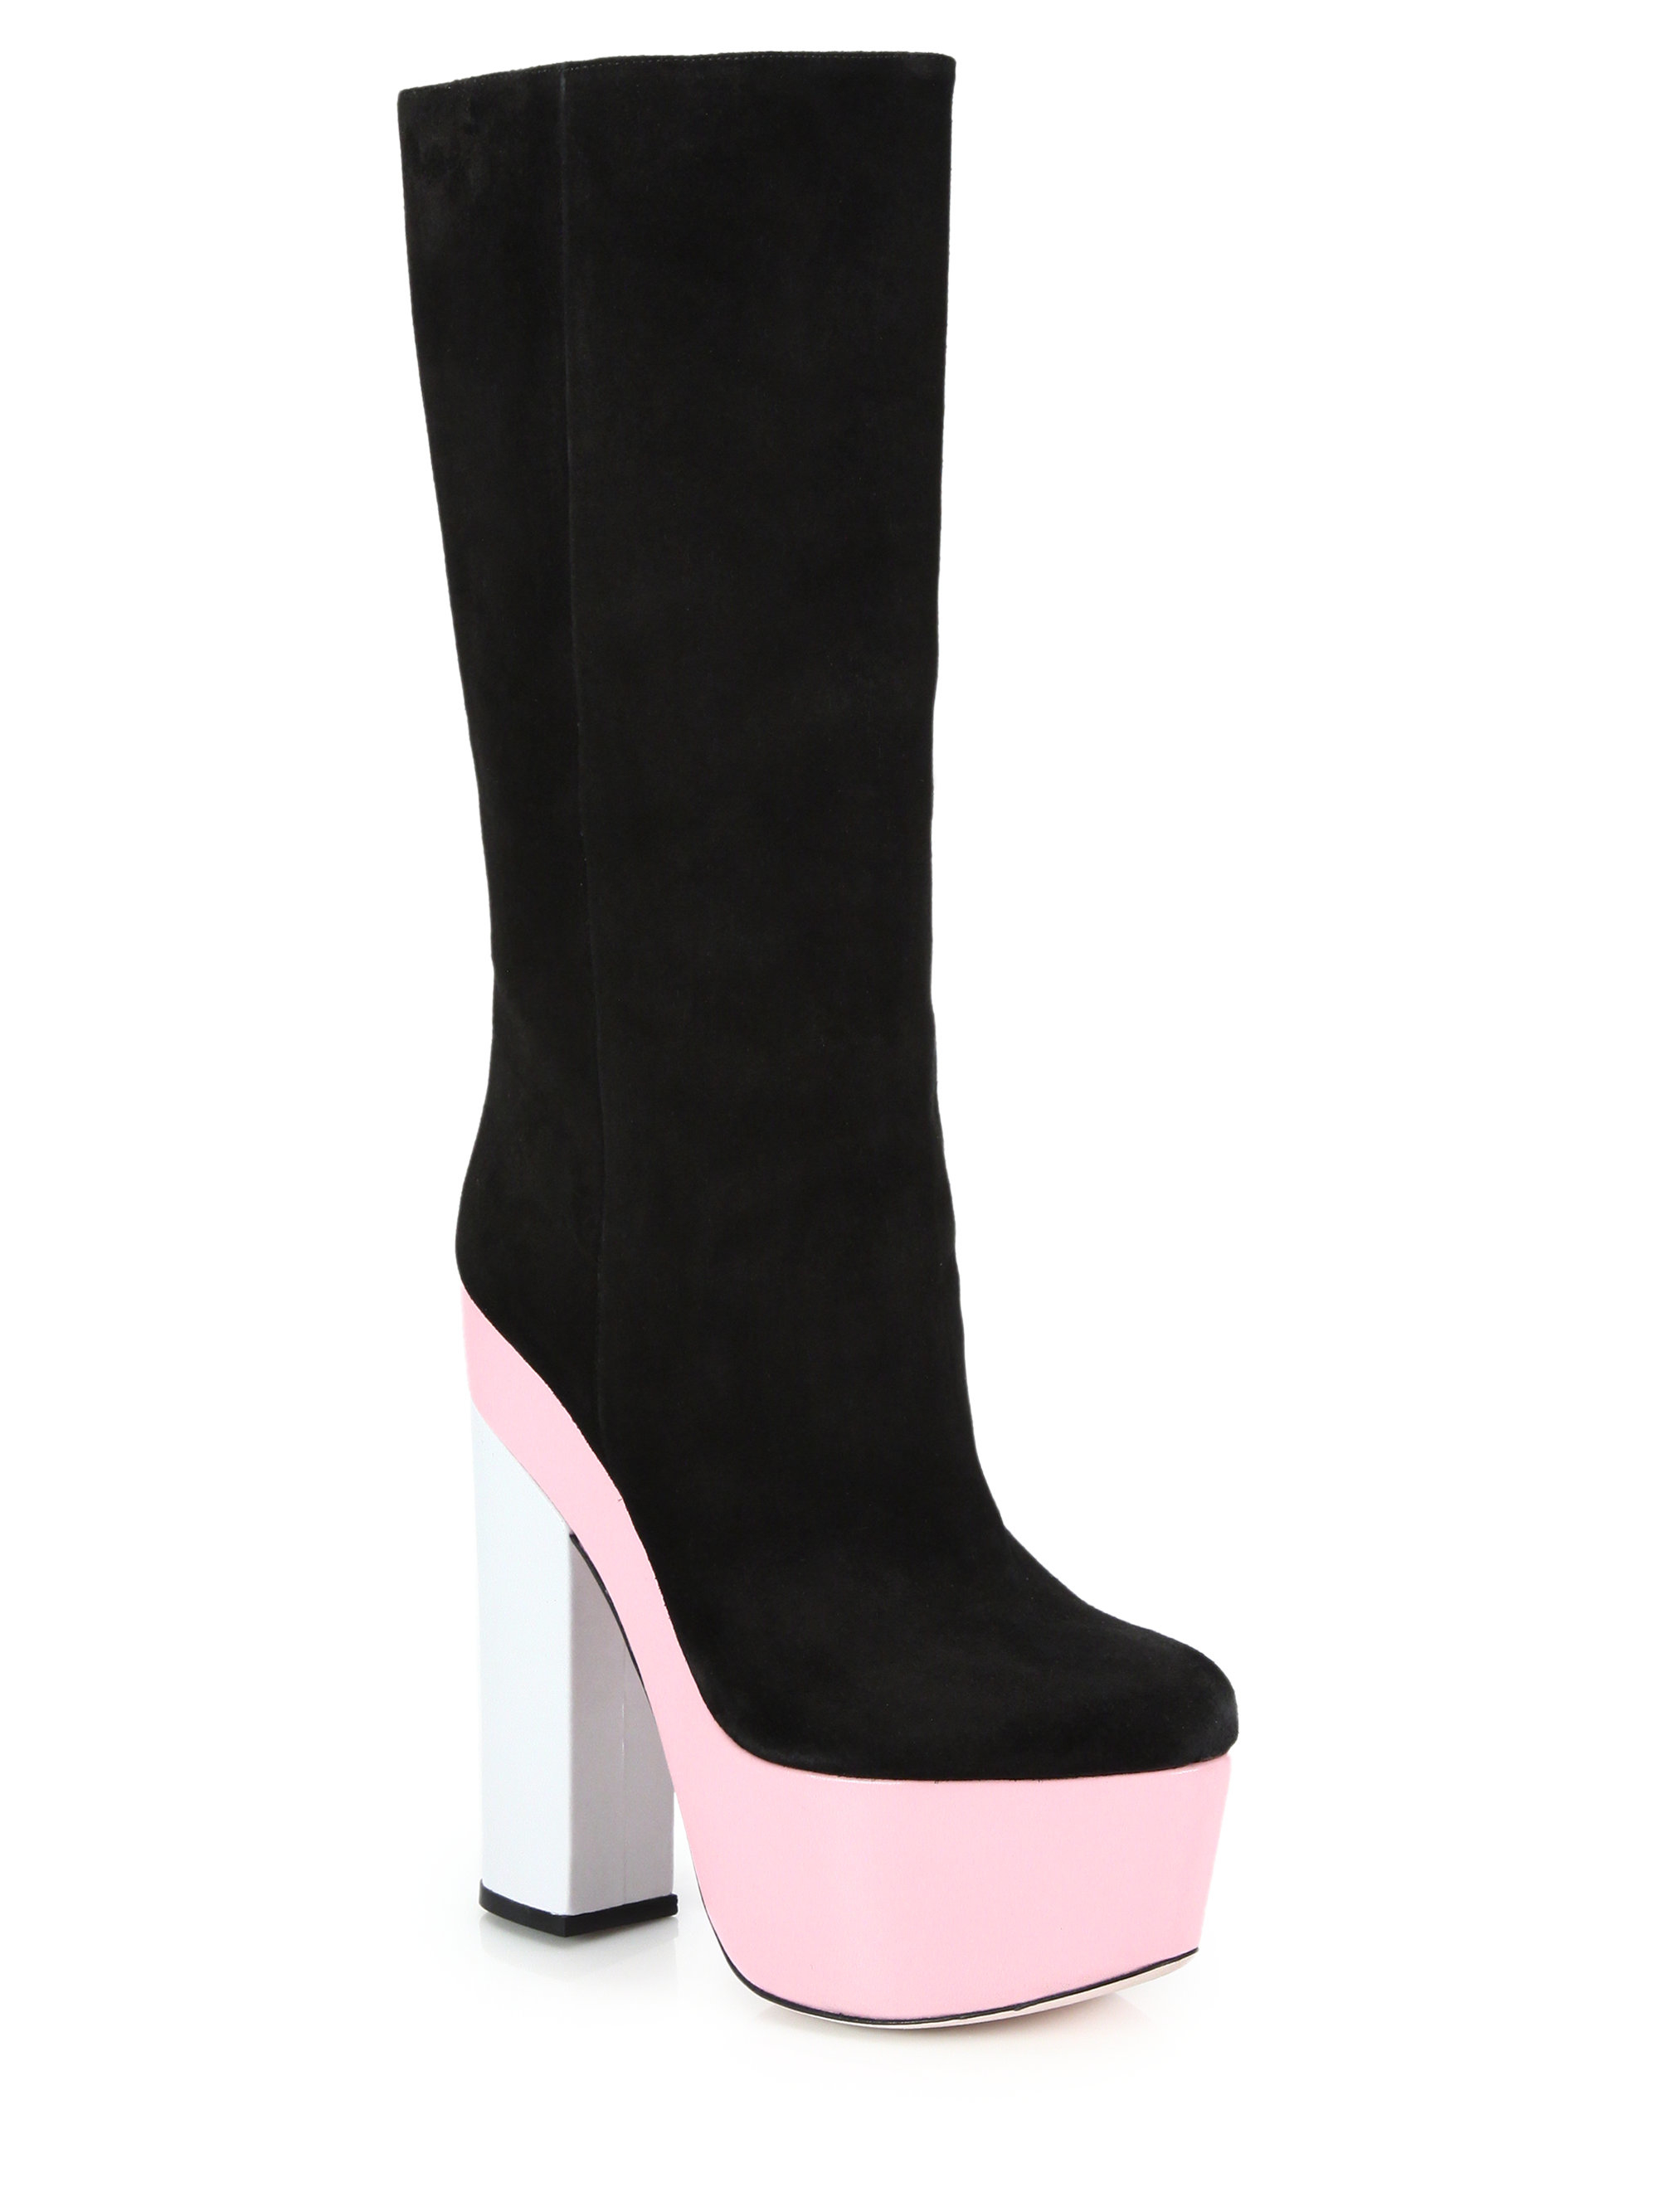 giamba suede leather colorblock platform boots in black